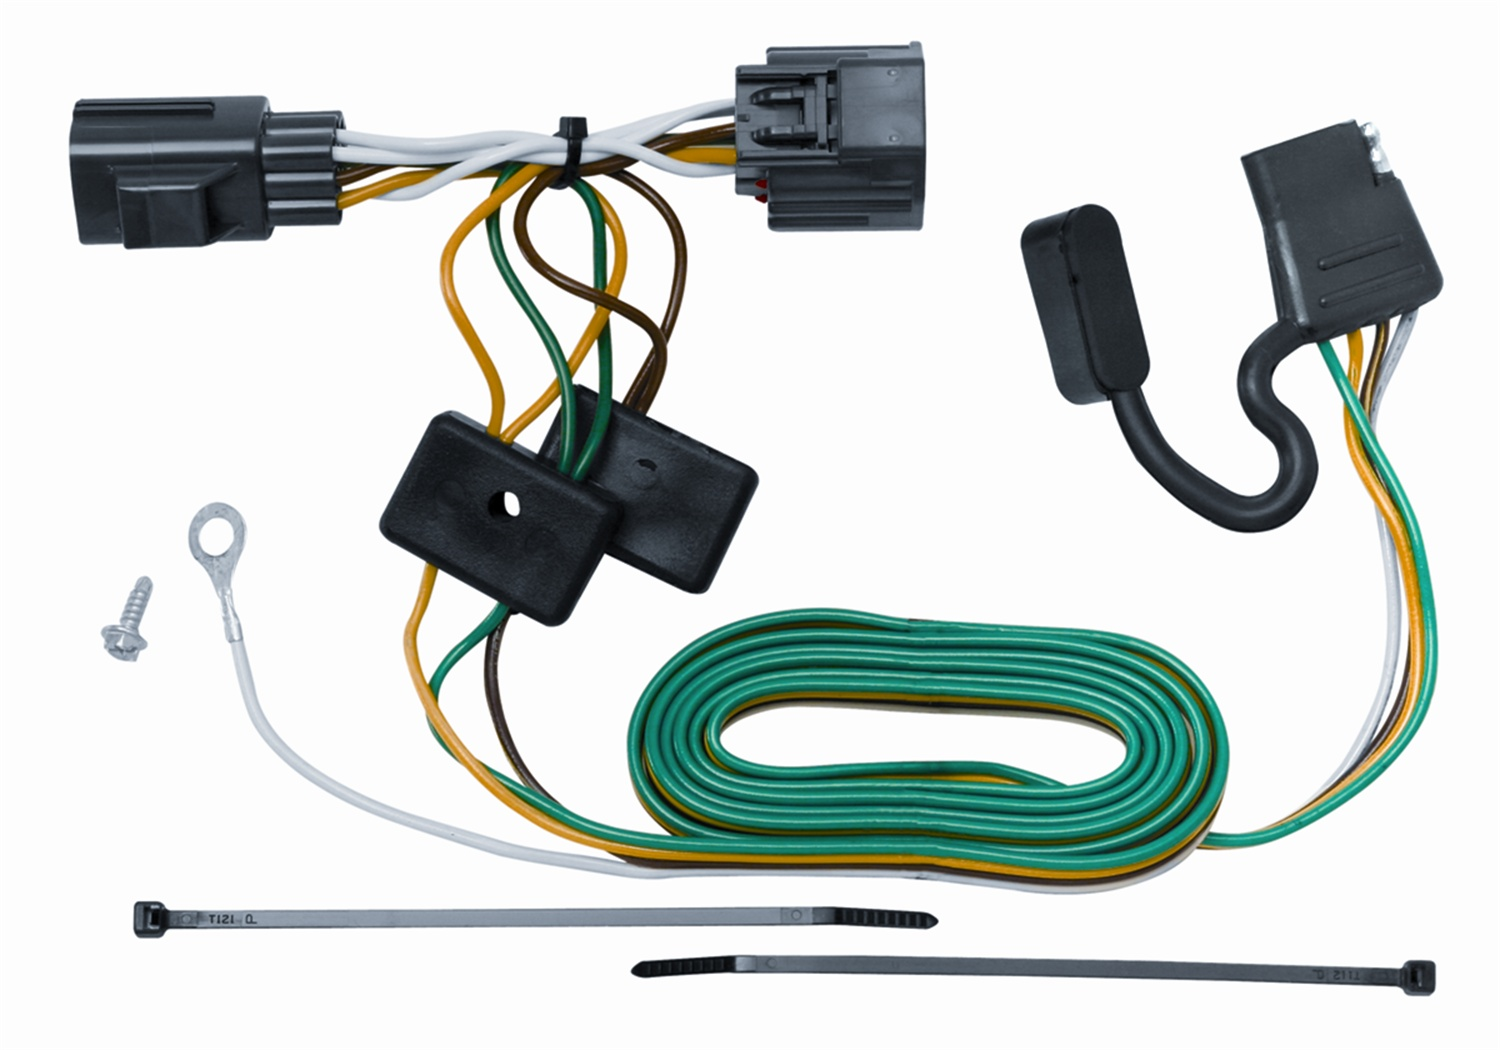 hight resolution of jeep wrangler trailer wiring electrical wiring diagrams 2006 jeep liberty wiring diagram trailer wiring jeep